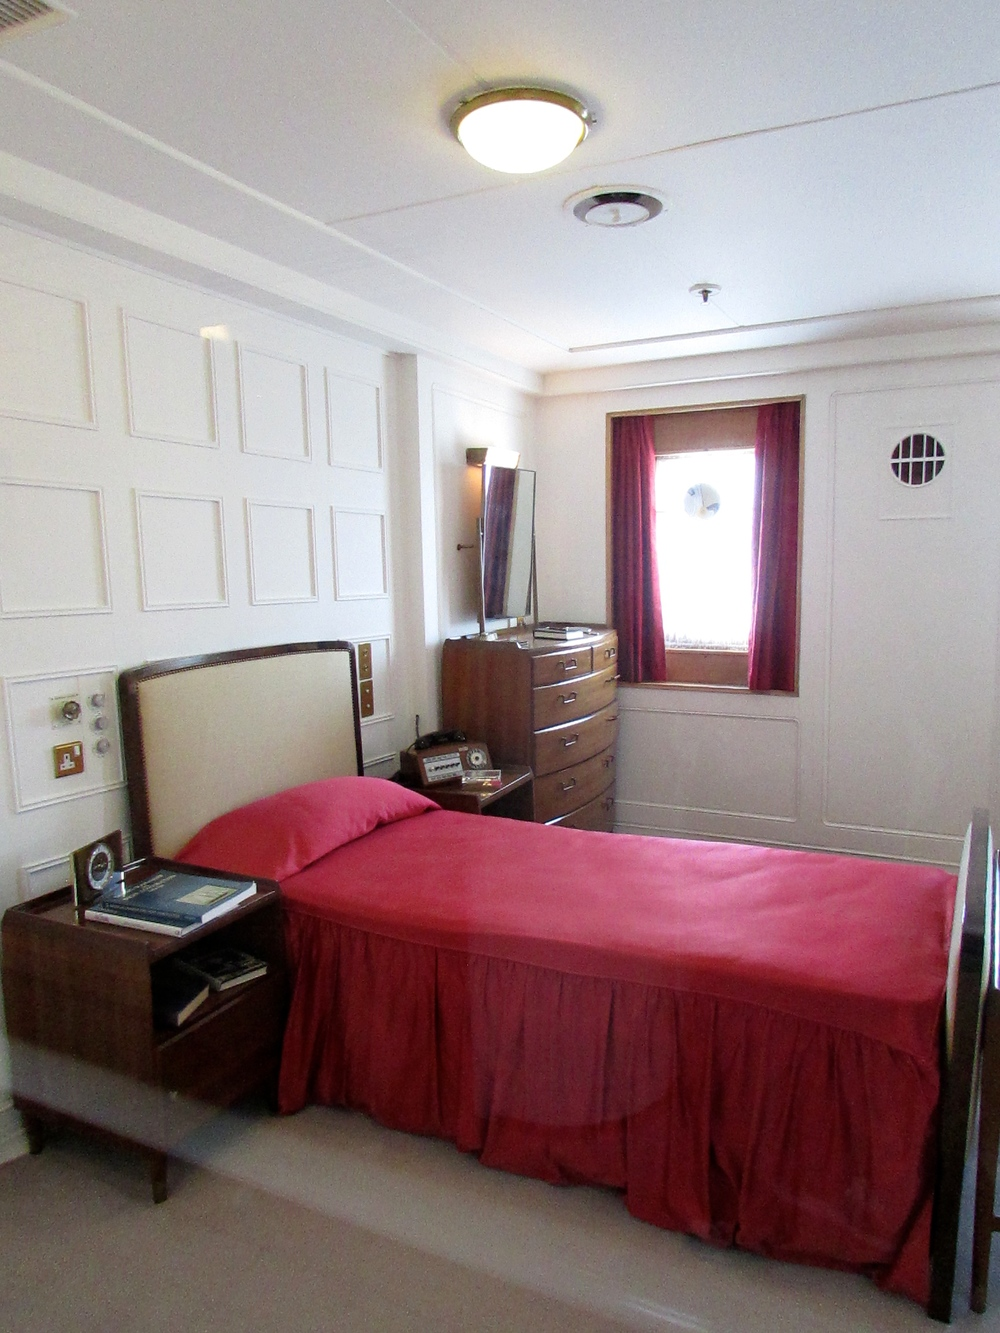 The Duke's private apartment also contains a single bed and simple furnishings.